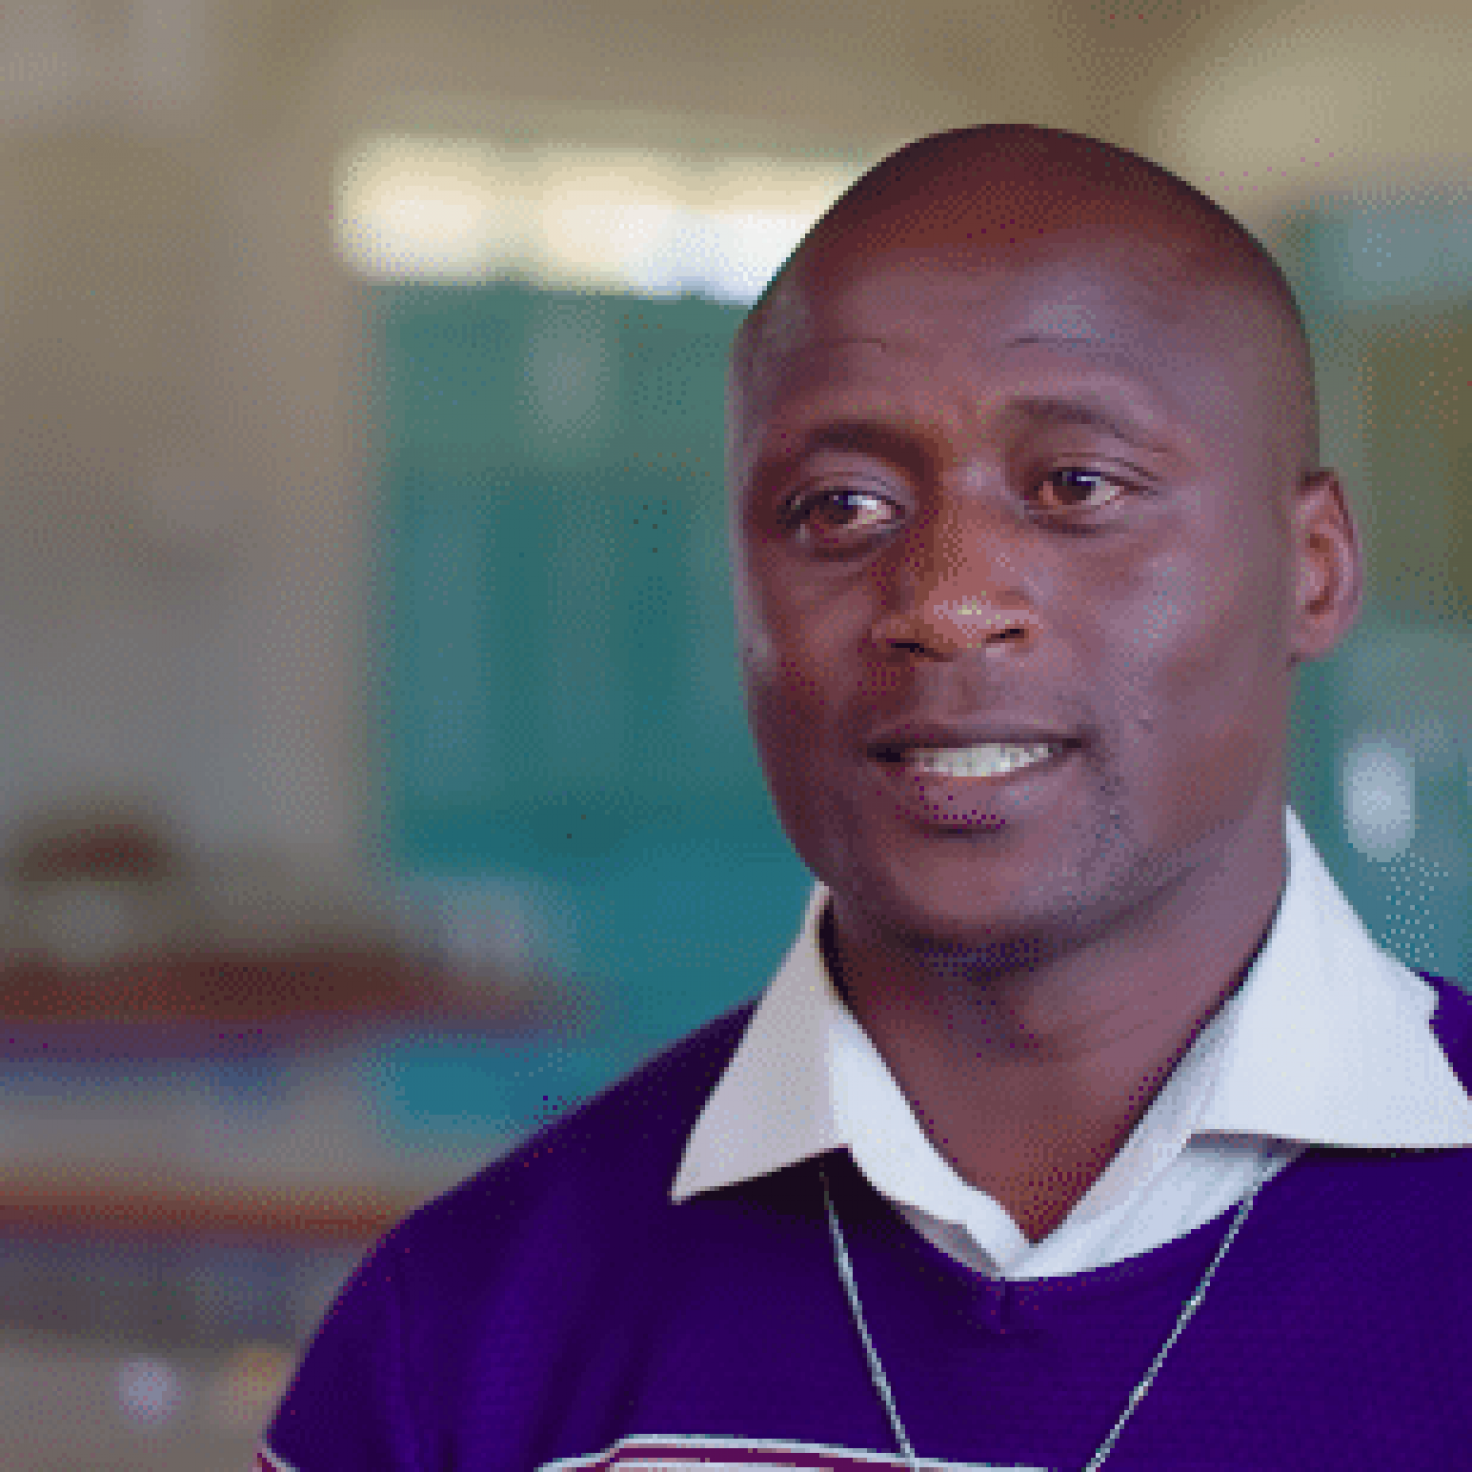 Kenyan Teacher Who Gives Away 80 Percent Of Salary To Poor Communities Wins $1 Million Global Prize